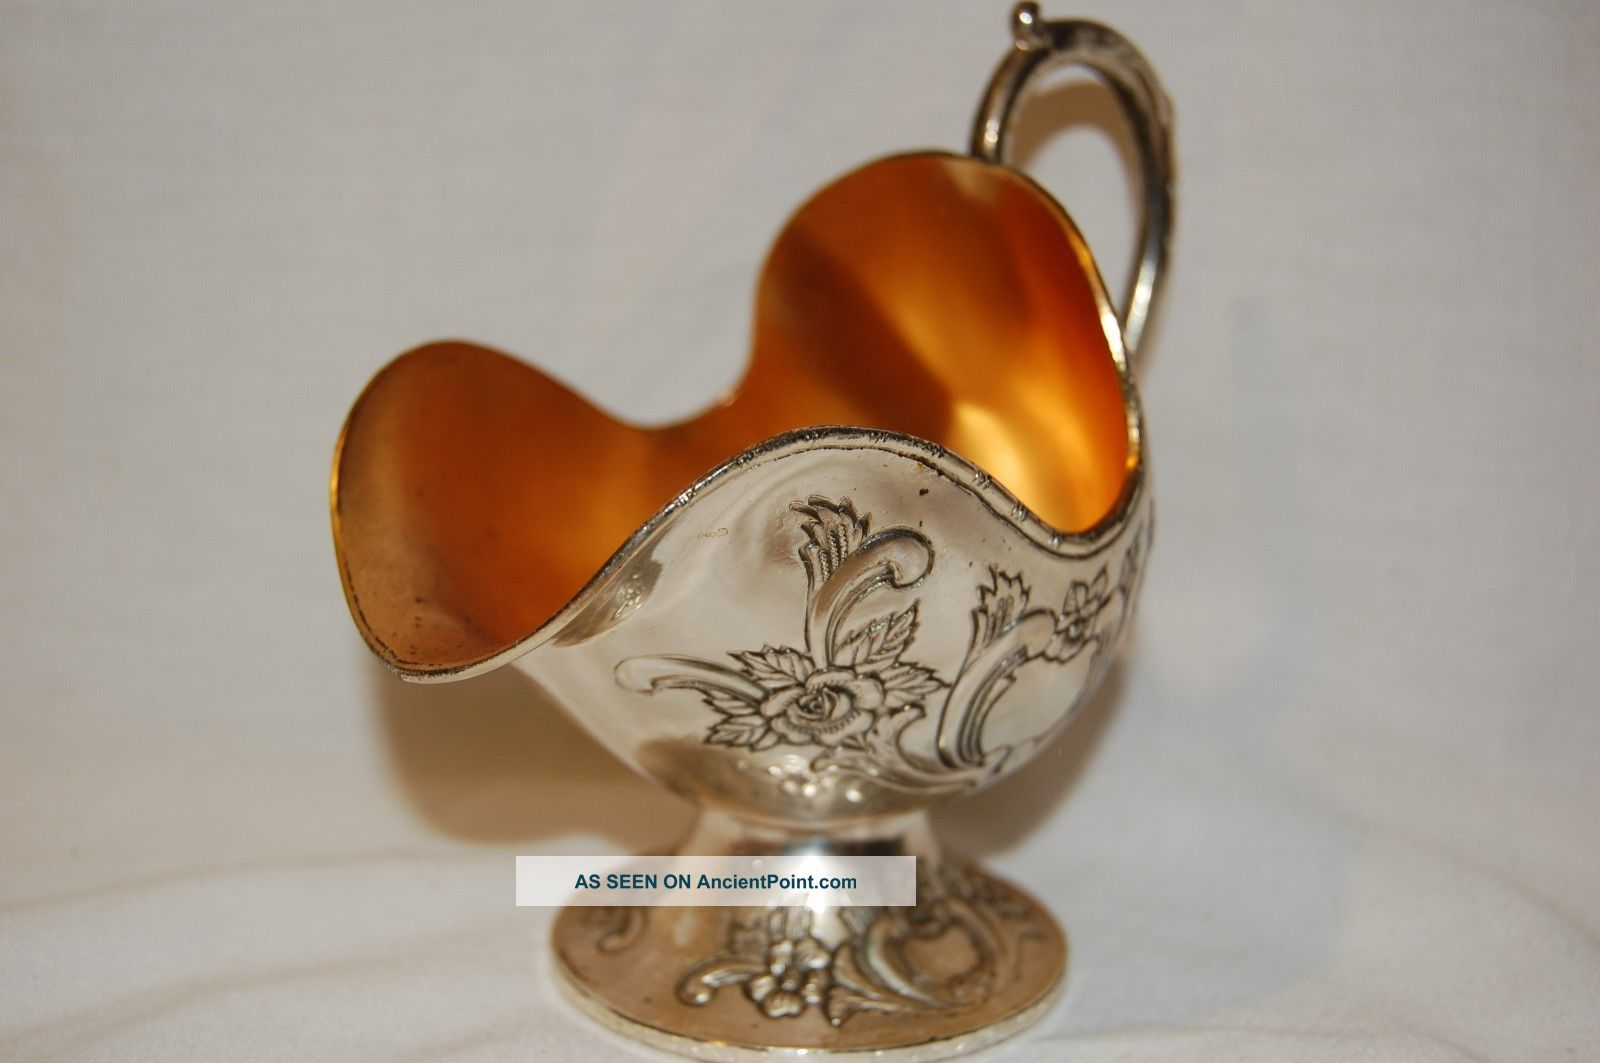 Vintage Pedestal Coal Scuttle Sugar Bowl Silver Goldplate From Japan Collectible Creamers & Sugar Bowls photo